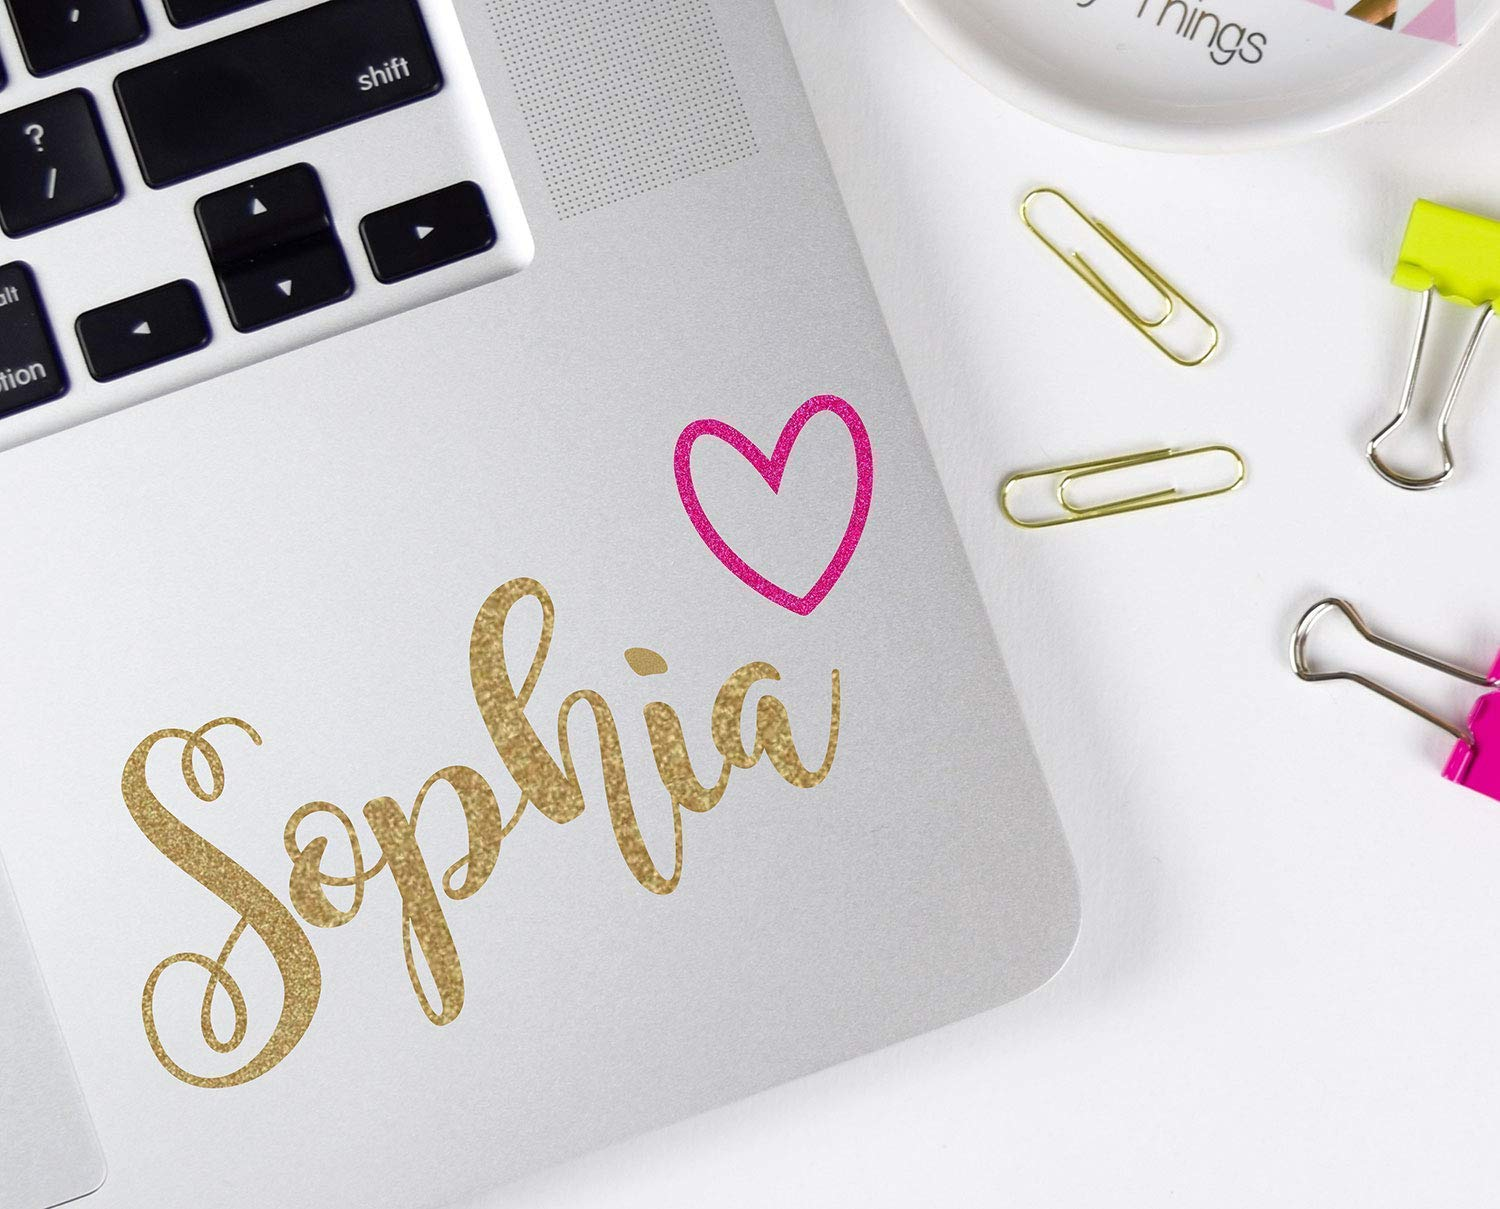 Custom Name Laptop Decal, Cursive Sticker with Heart, Your Choice of Size and Colors